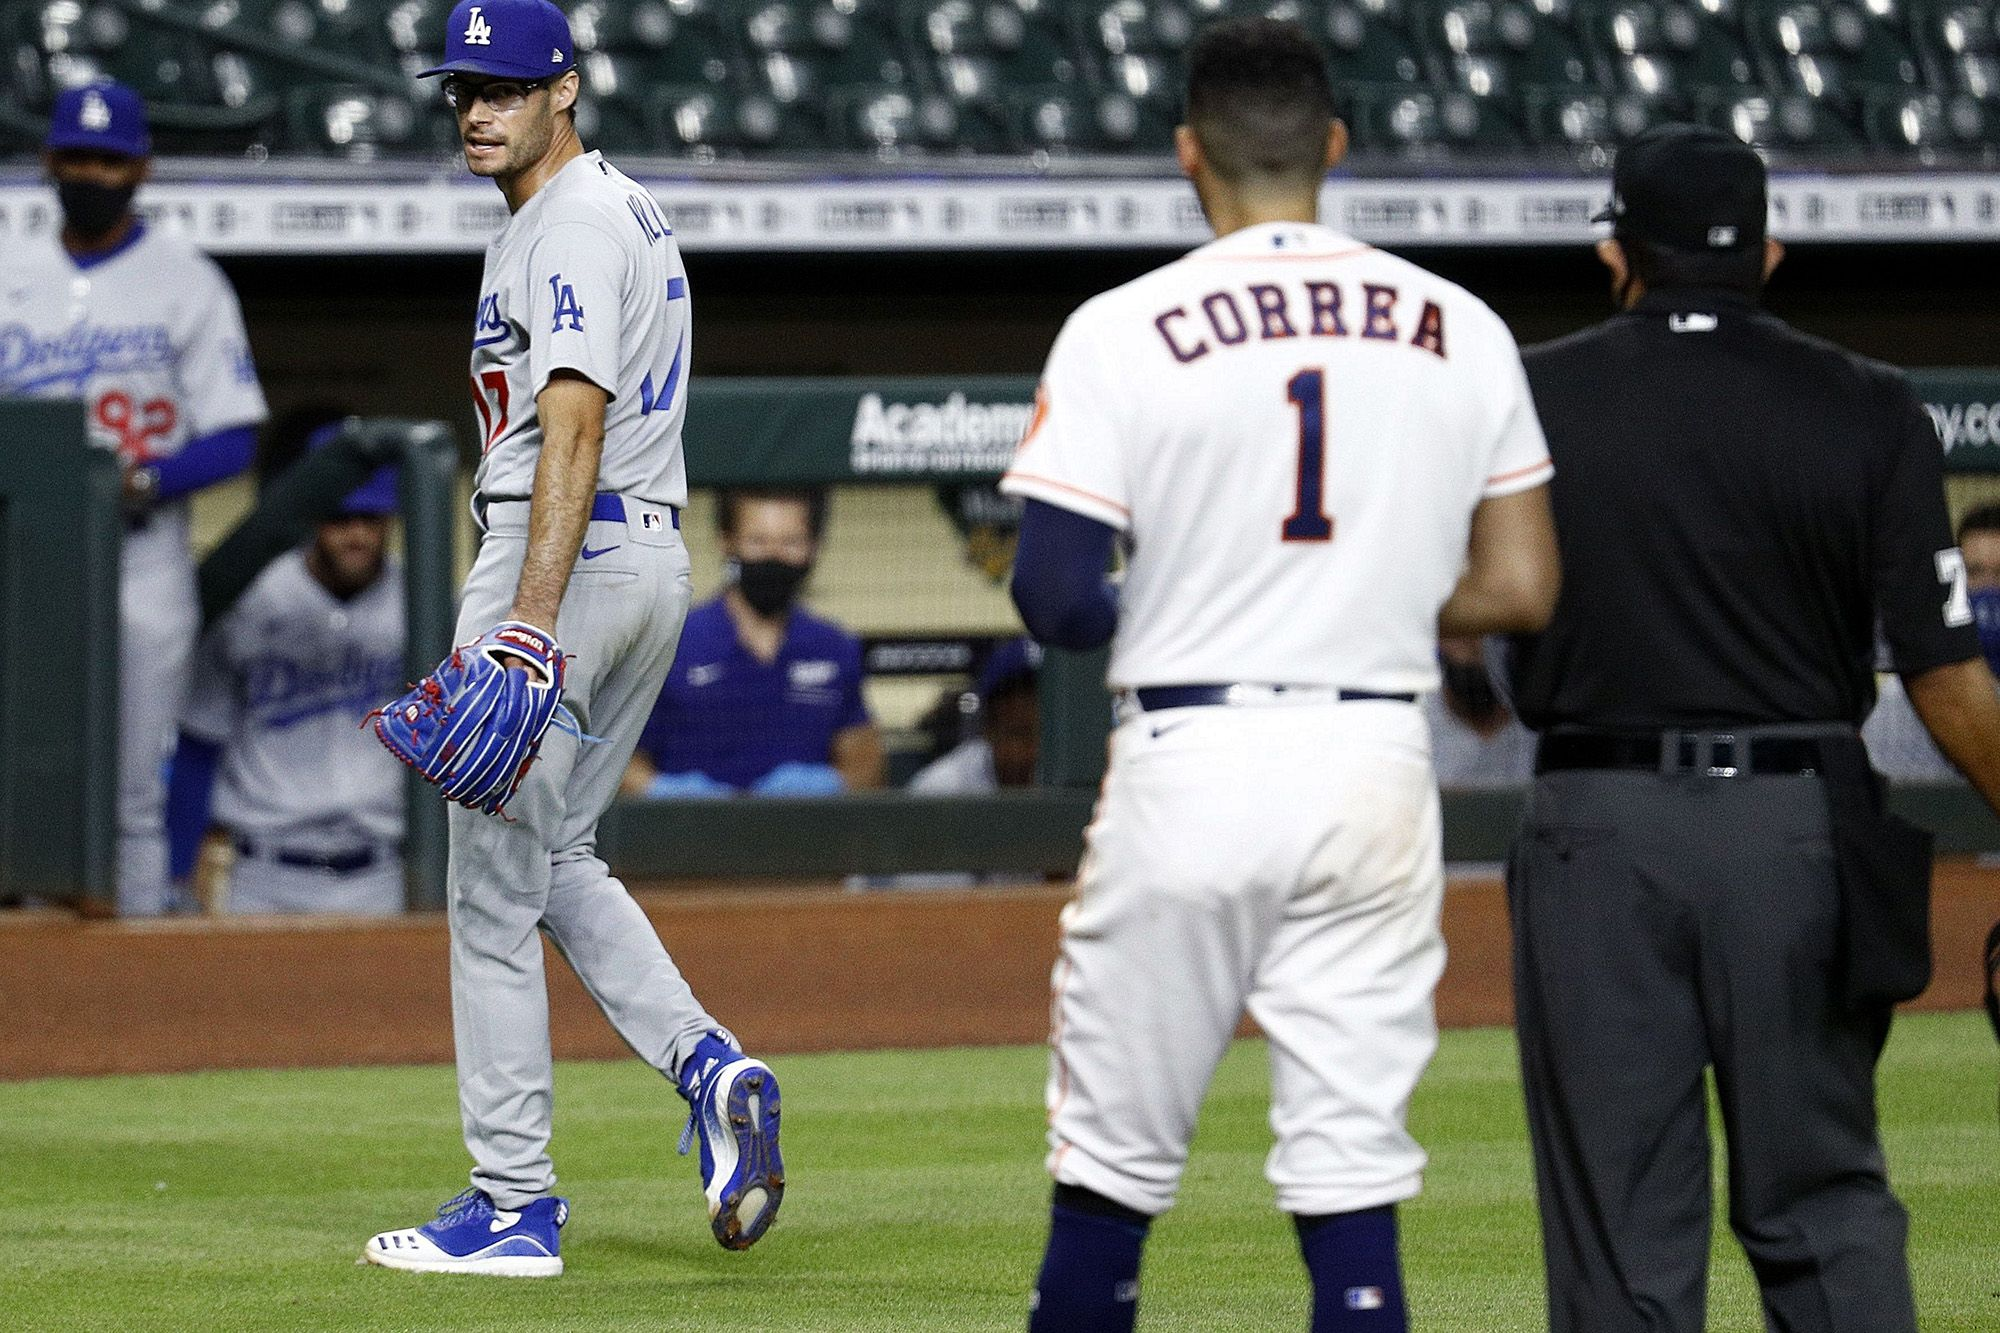 Mlb Suspended Los Angeles Dodgers Reliever Joe Kelly Eight Games After He Helped Ignite A Bench Clearing Incident Tuesday By Thro In 2020 Dodgers Nation Dodgers Astros